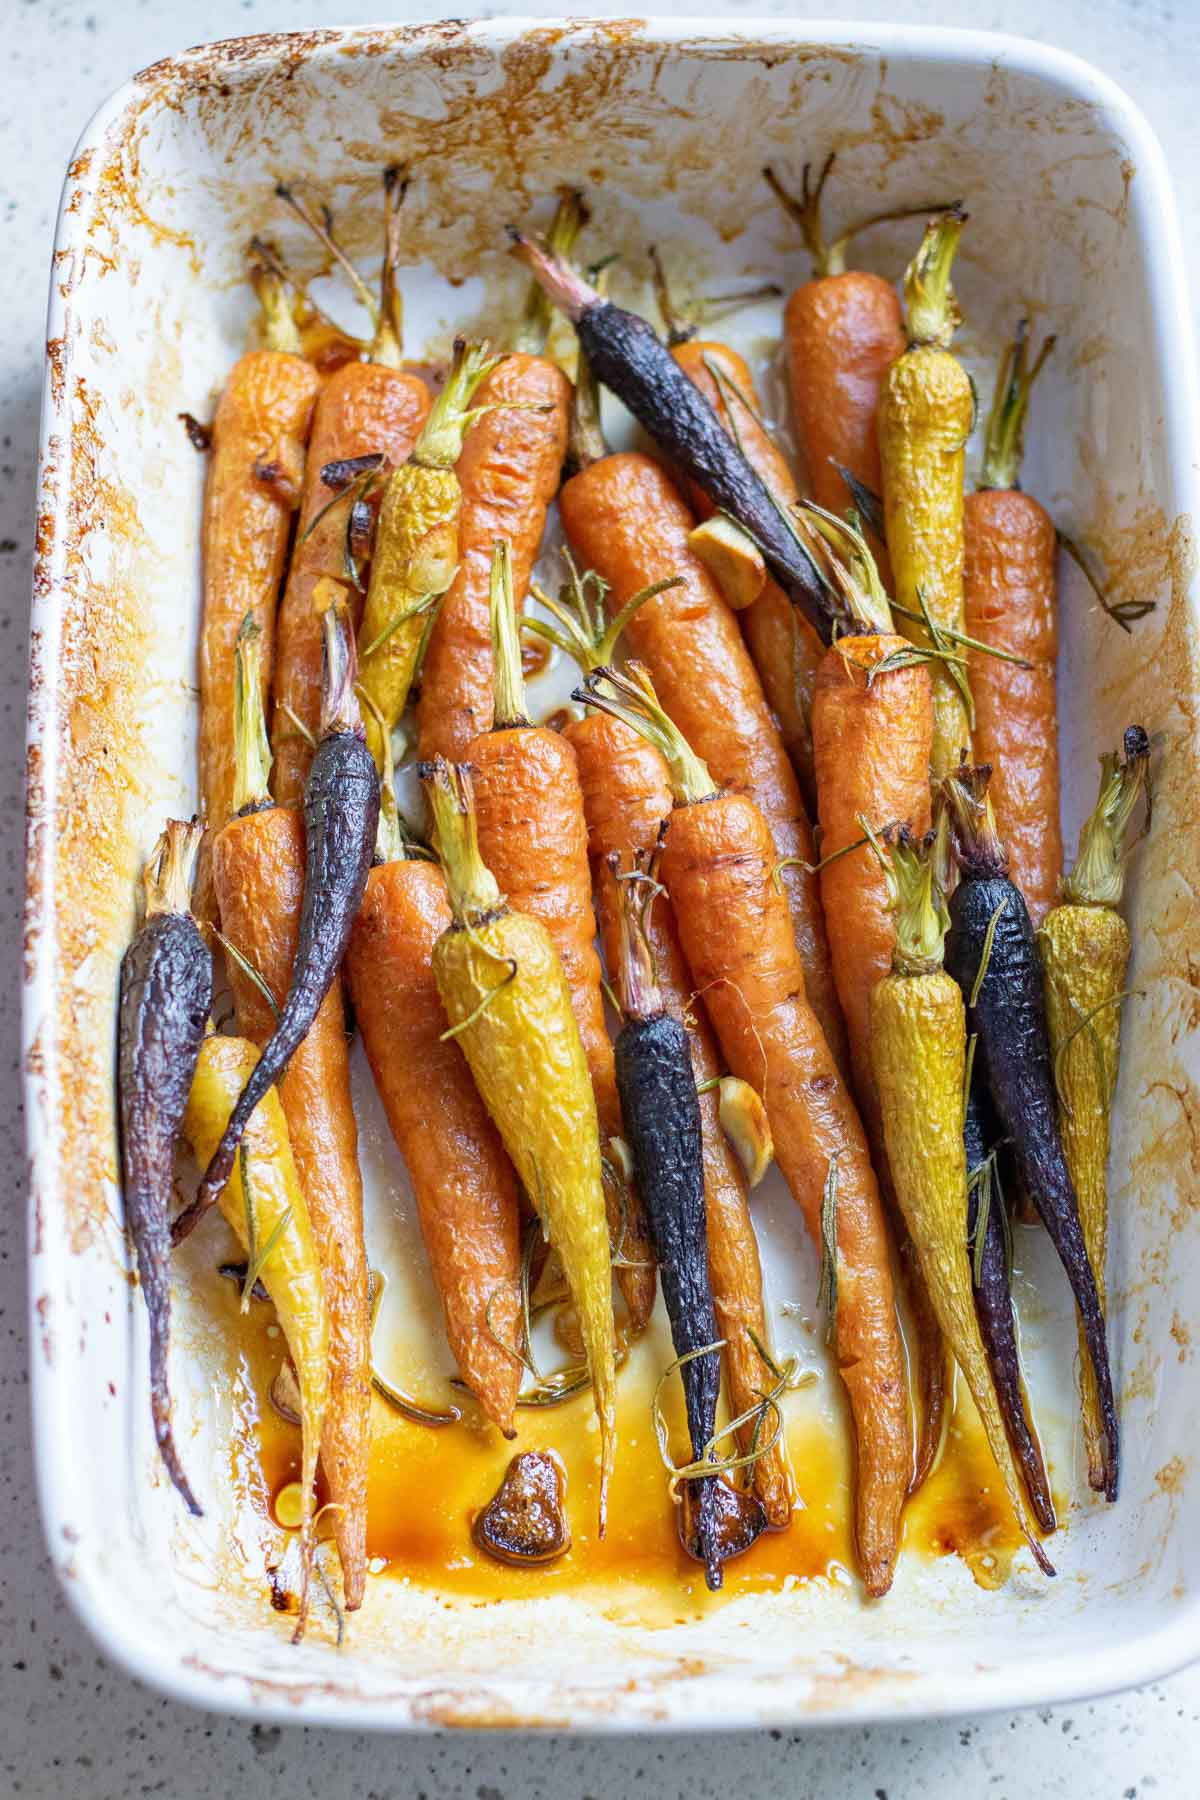 Honey roasted carrots in a white rectangle baking dish